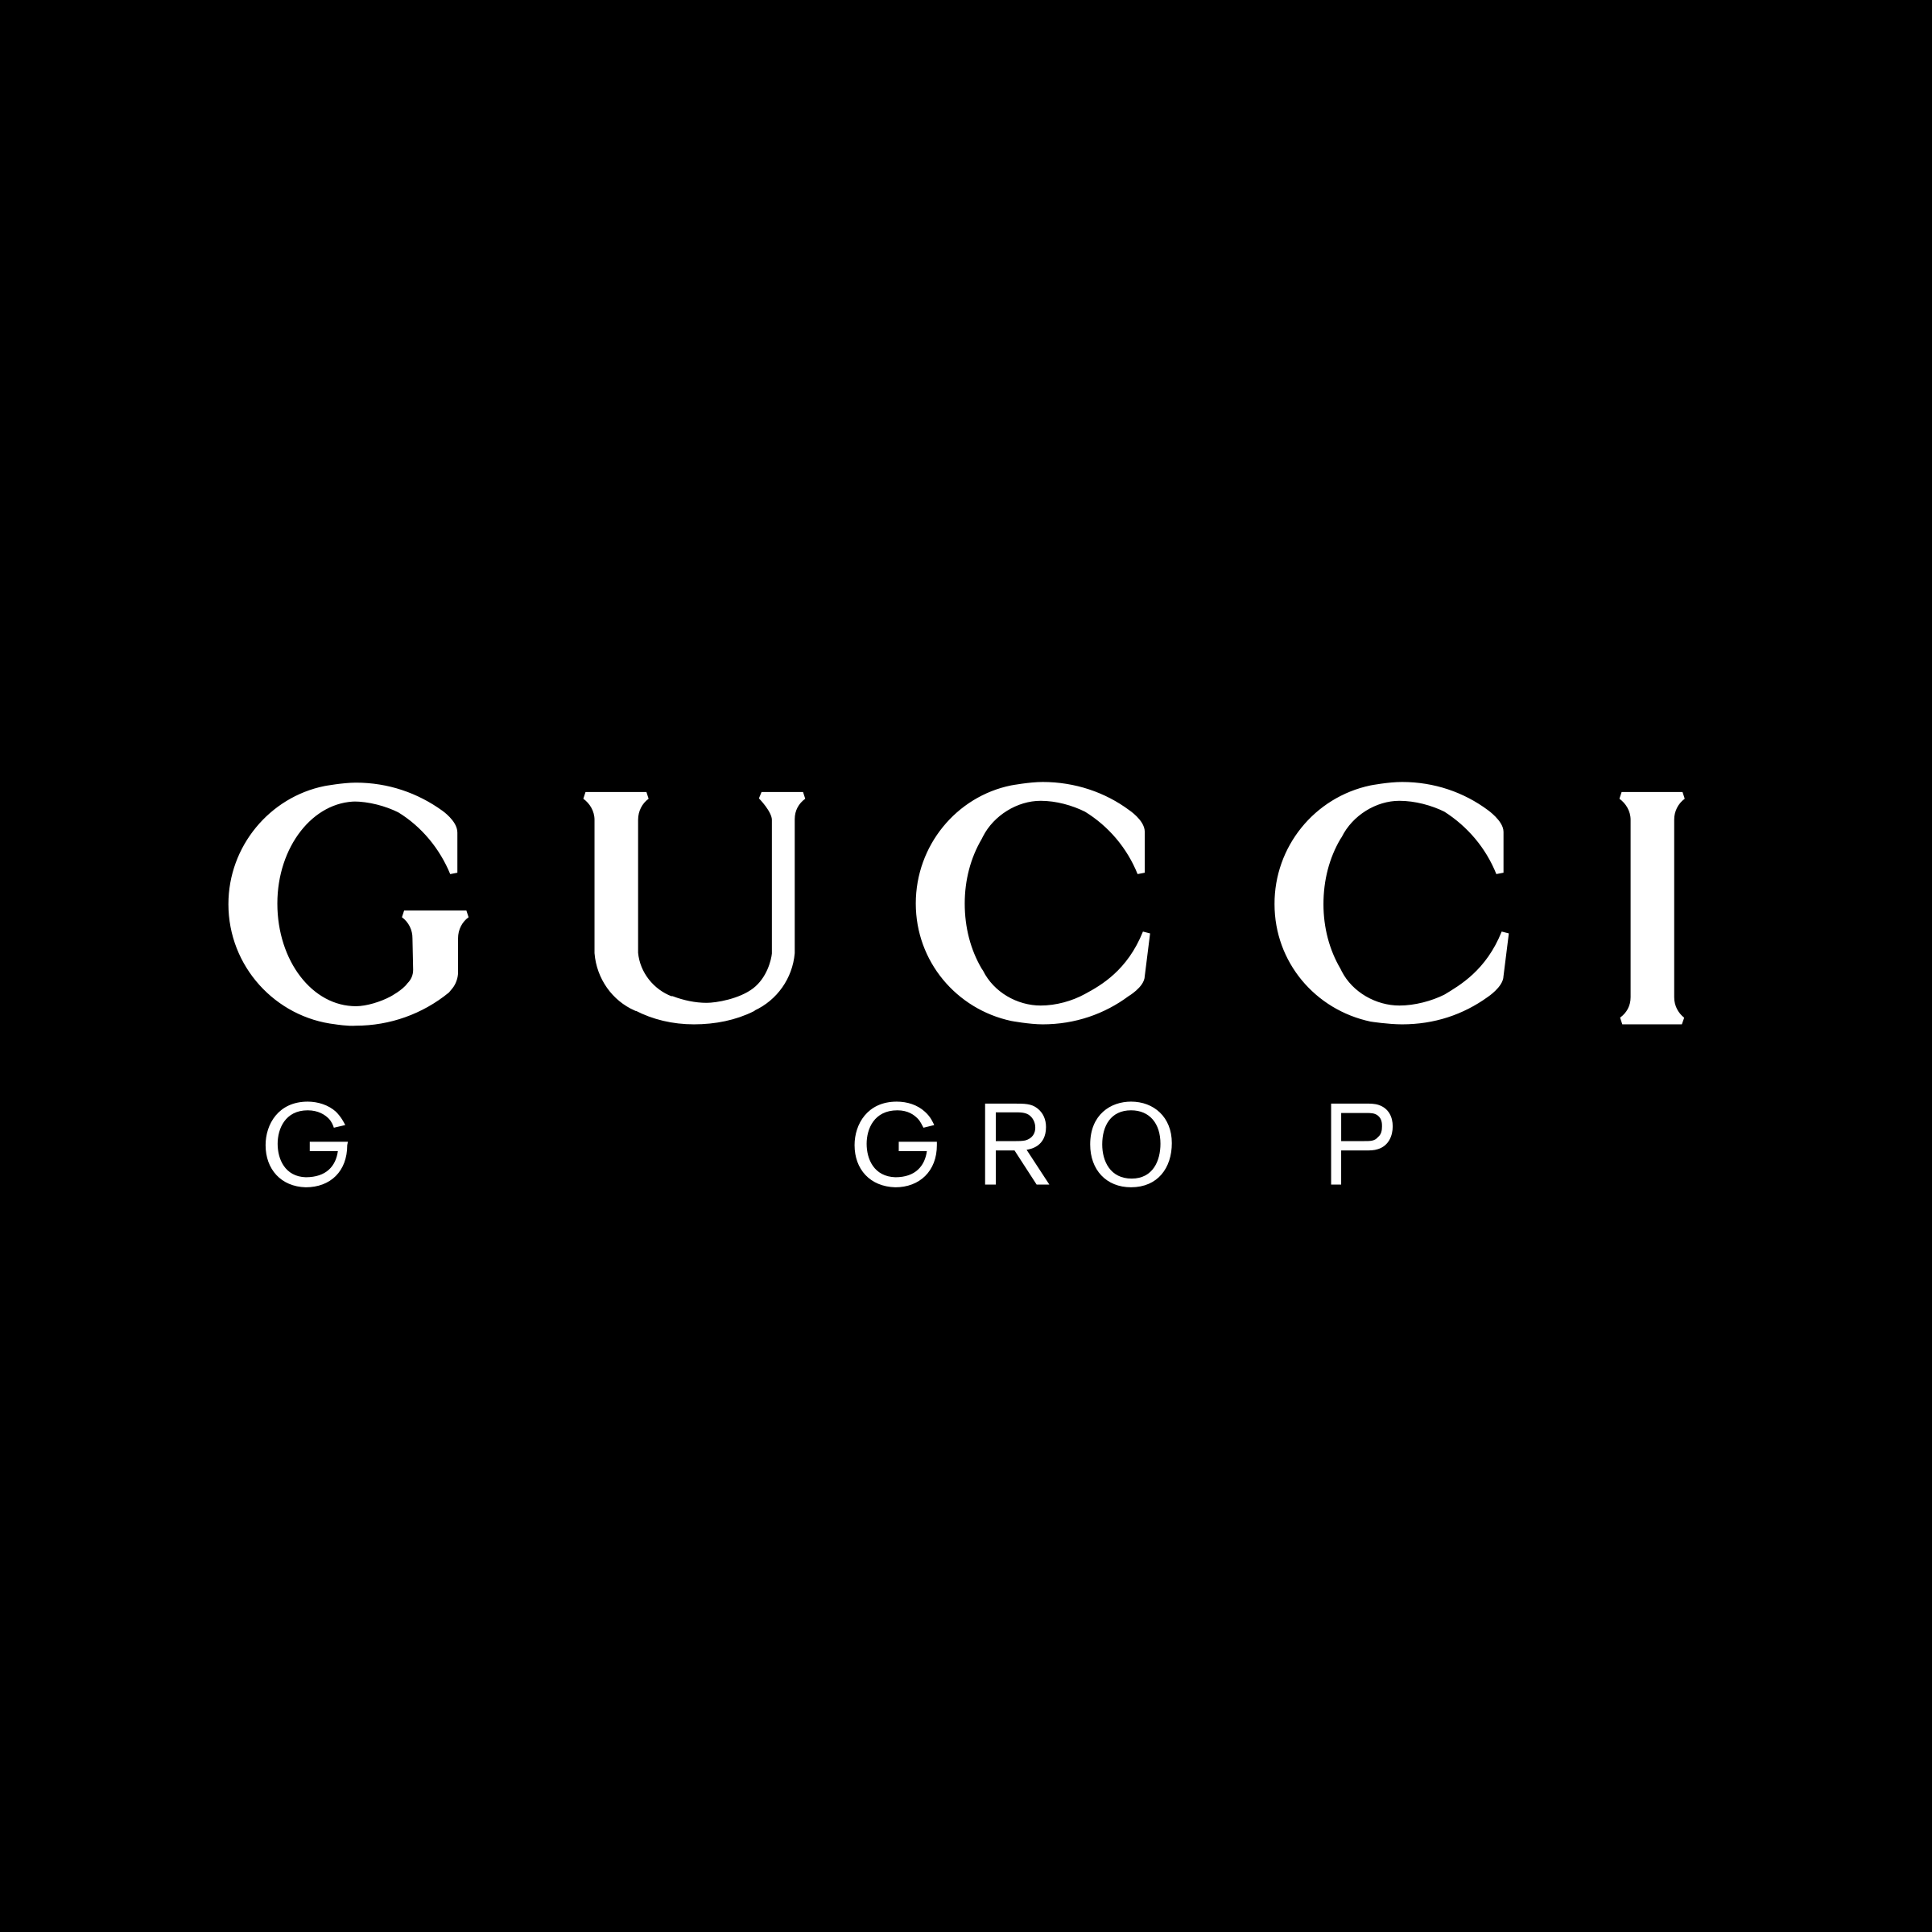 Gucci Group Logo Png Transparent Svg Vector Freebie Supply Logo brand svg, custom logo svg, logo customized, branding, logo, fashion, trends, brand gucci logo wordmark svg file available for instant download online in the form of jpg, png, svg. gucci group logo png transparent svg